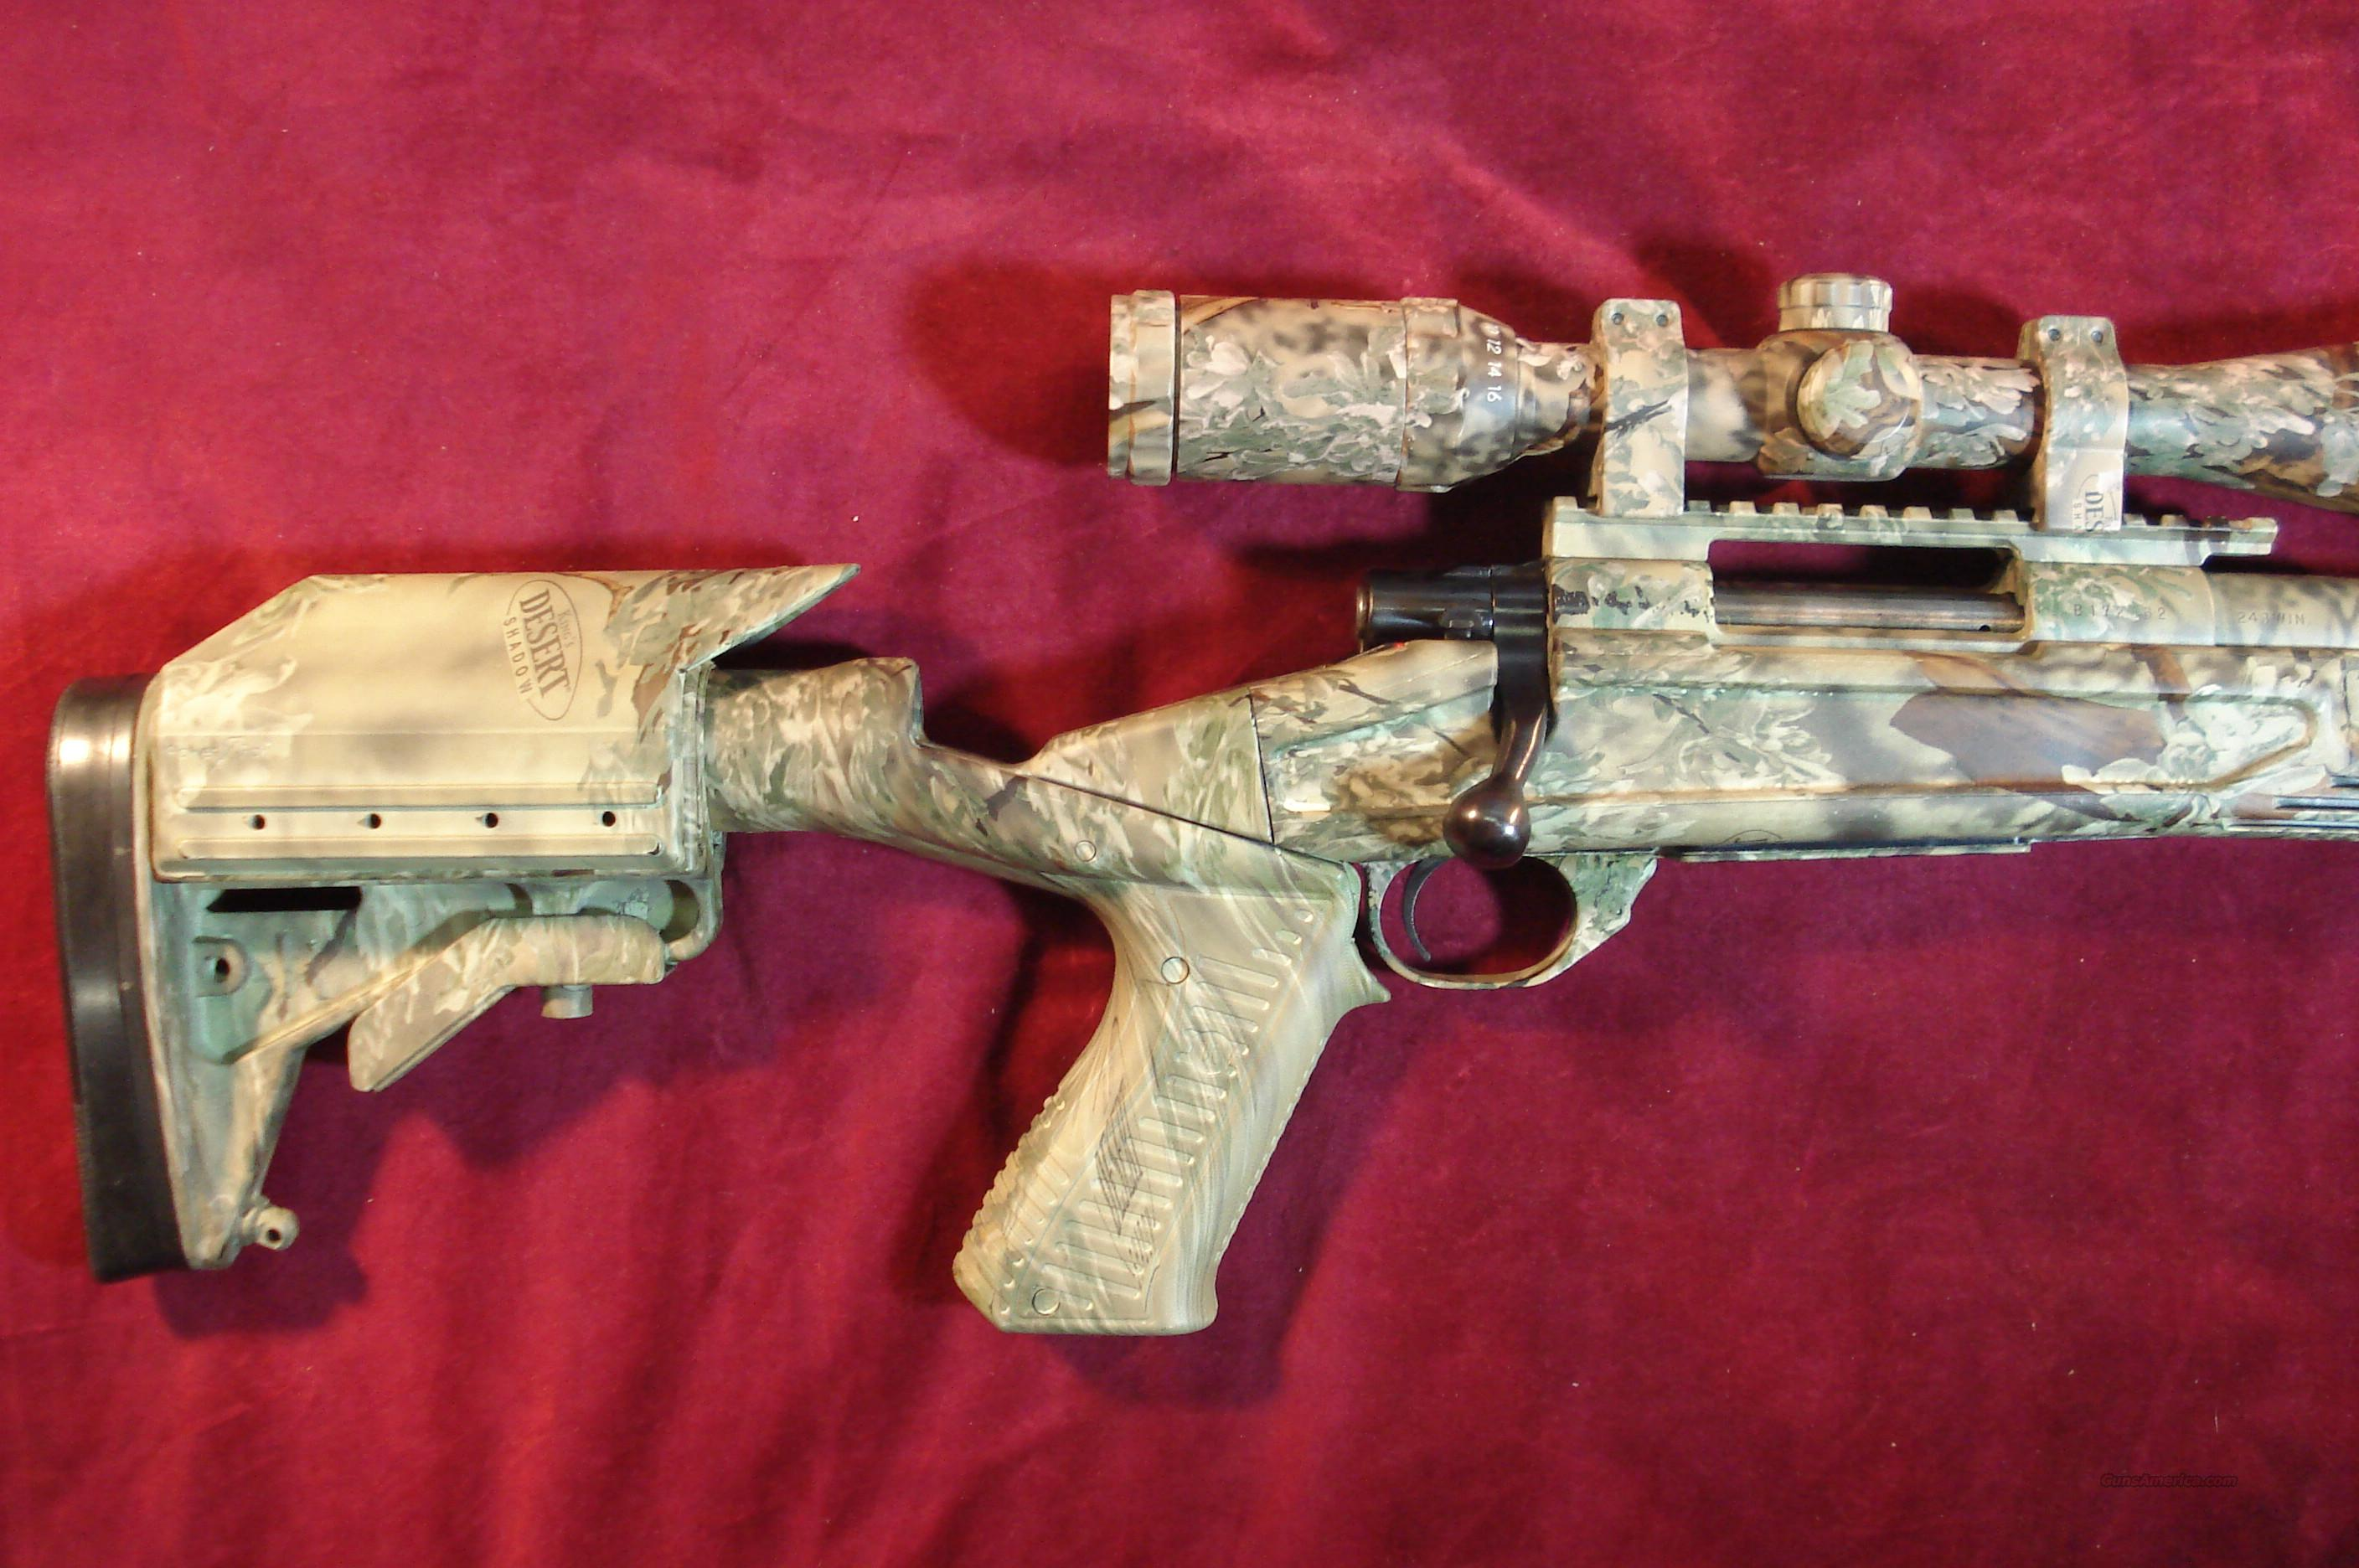 HOWA 1500 DESERT CAMO 243CAL W/4X16 NIKKO STERLING SCOPE USED   Guns > Rifles > Howa Rifles